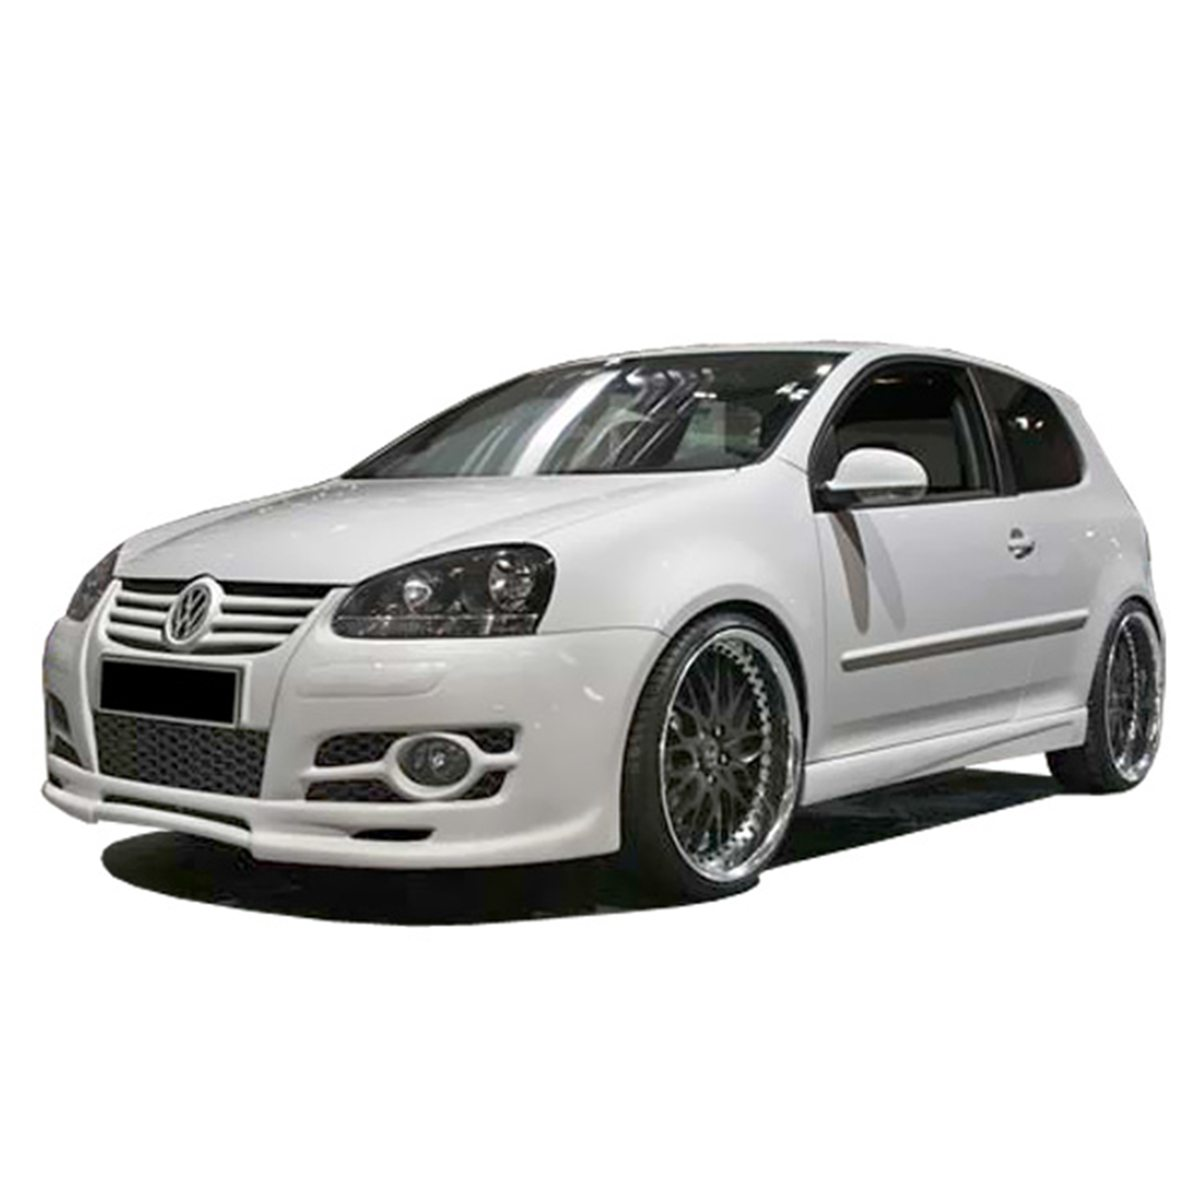 VW-Golf-V-Poker-Frt-PCS240